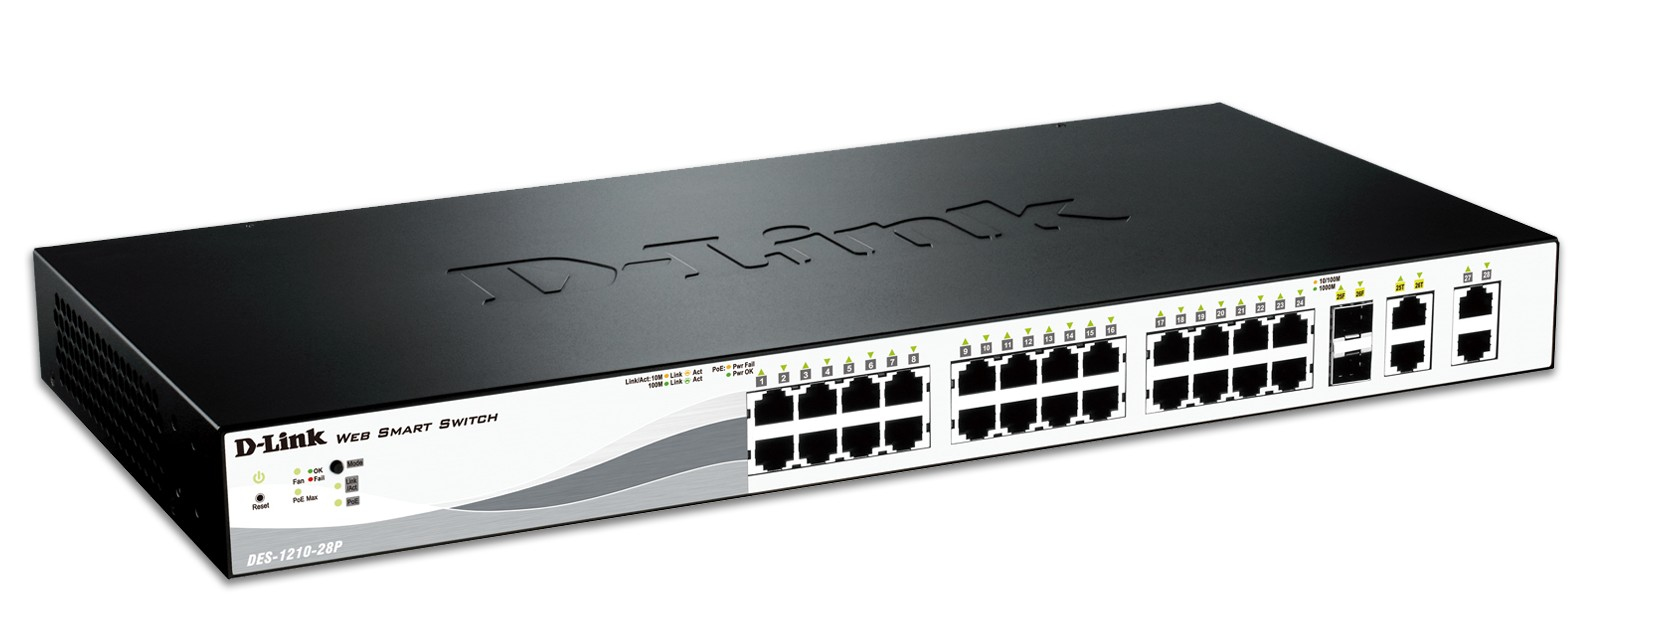 D-LINK DES-1210-28P NETWORK SWITCH